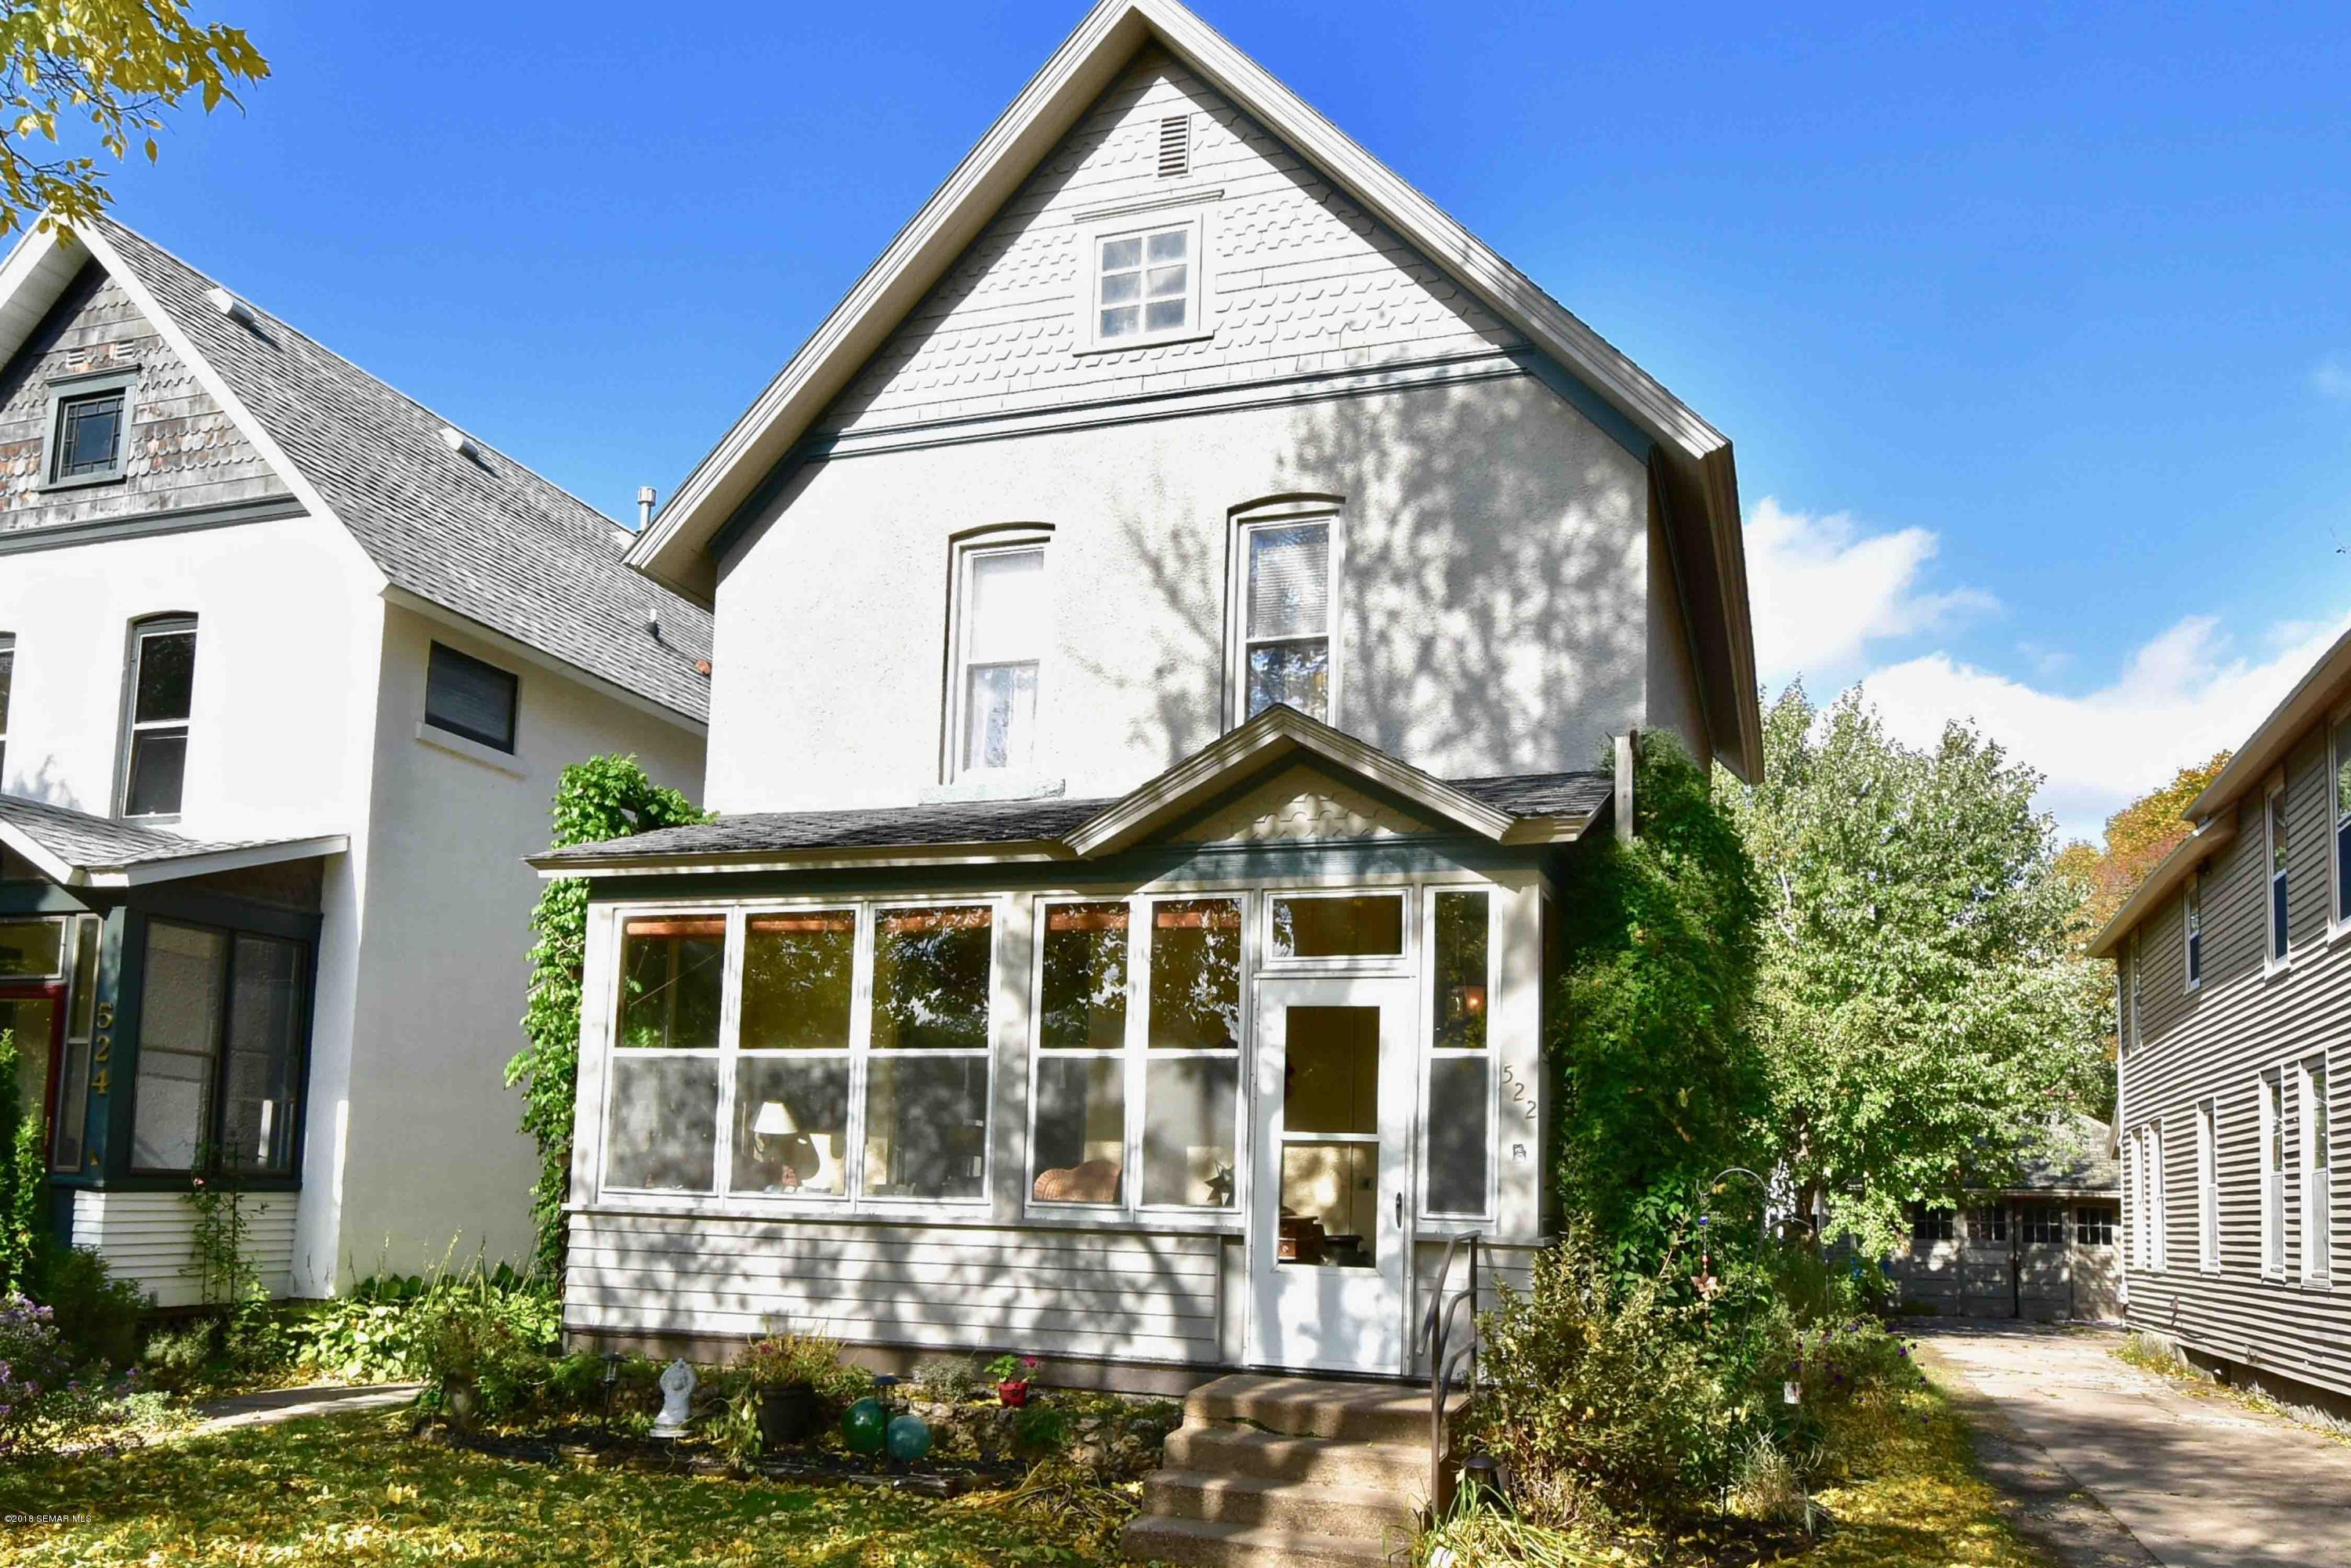 522 7th,Winona,Minnesota 55987,3 Bedrooms Bedrooms,2 BathroomsBathrooms,Single family residence,7th,4091927